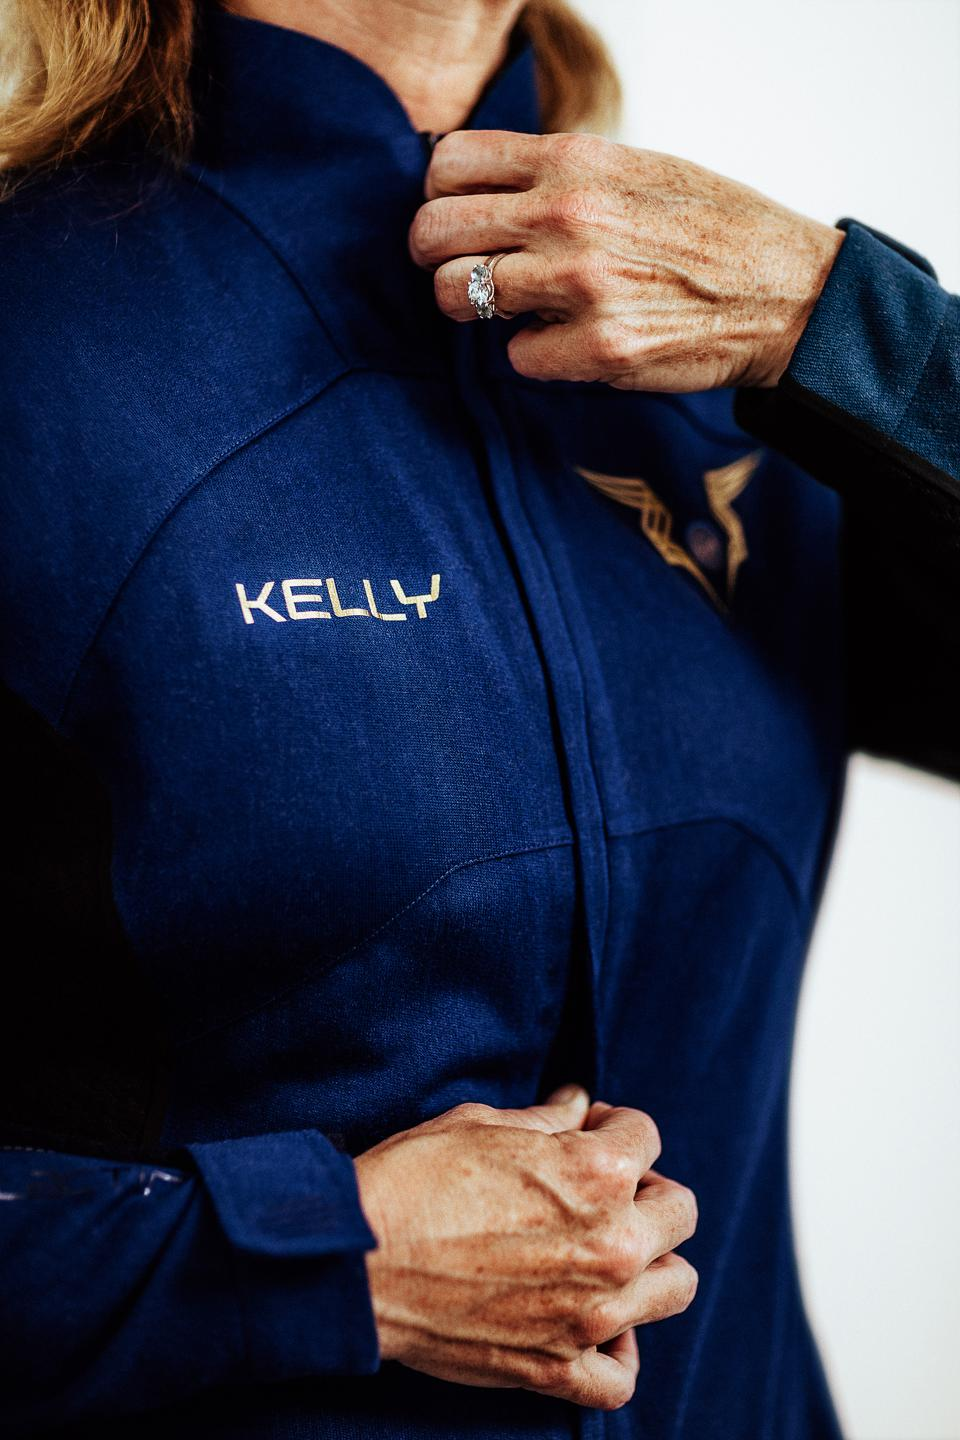 A woman zips up a spacesuit that reads ″Kelly″ on the chest.